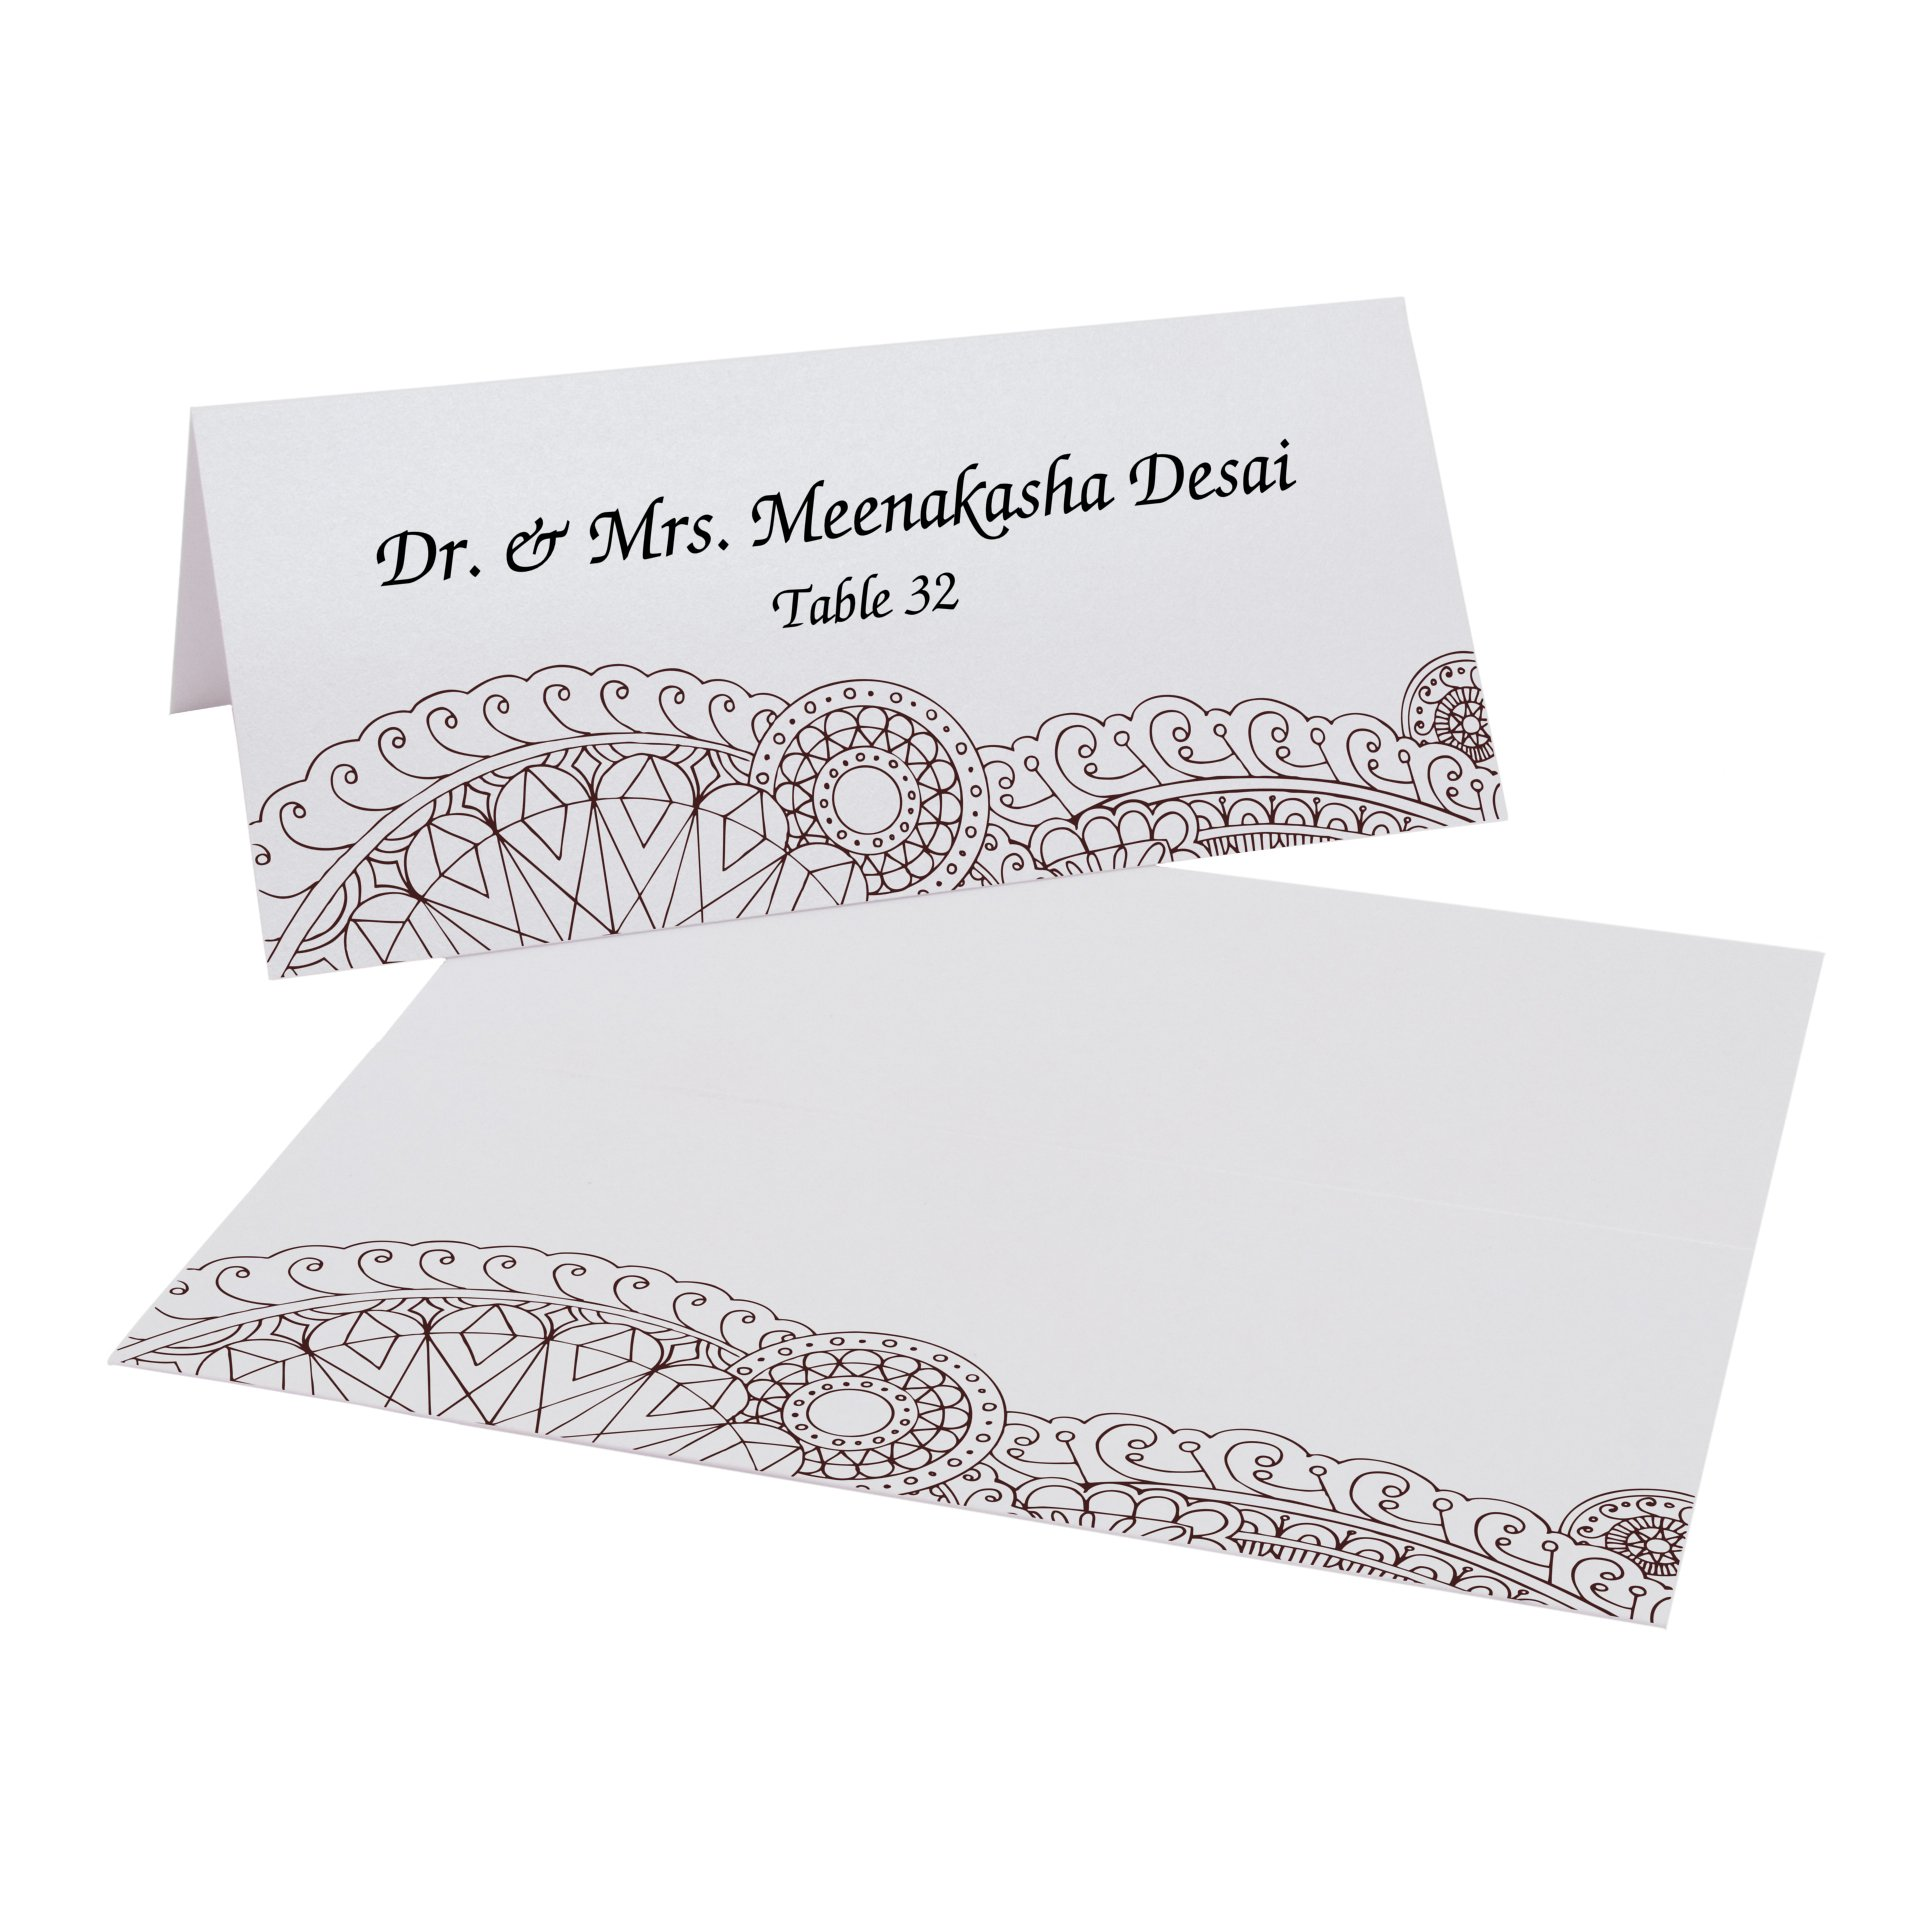 Bottom Paisley Place Cards, Pearl White, Chocolate, Set of 375 by Documents and Designs